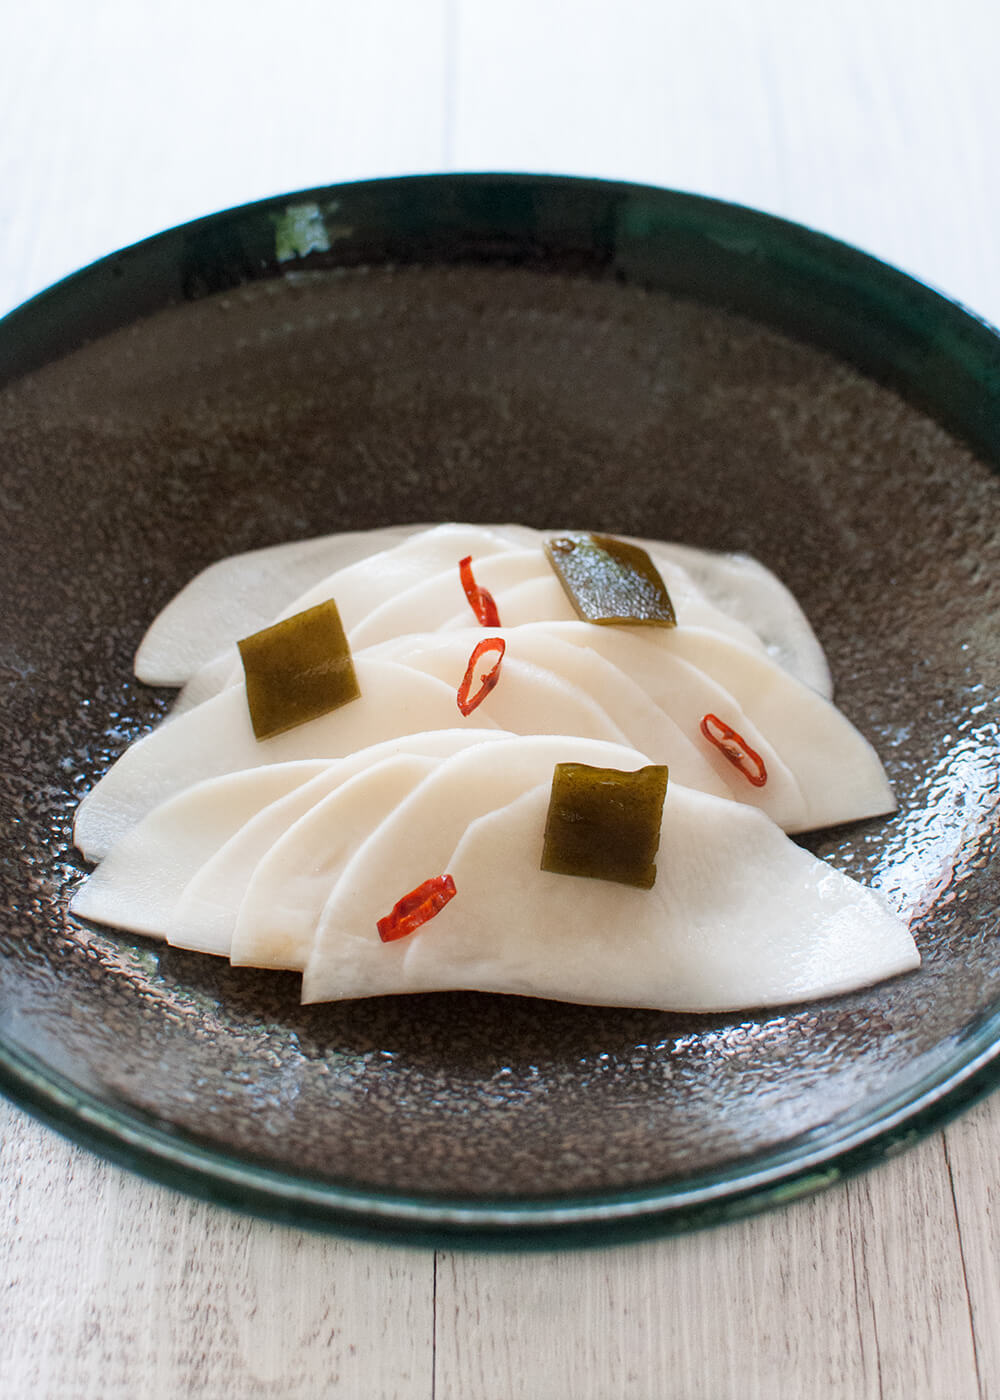 Thinly sliced turnip is marinated in sweet vinegar with konbu and chilli. Crunchy turnip with sweet and sour flavour – it's greatwith rice and goes well with drinks as nibbles.